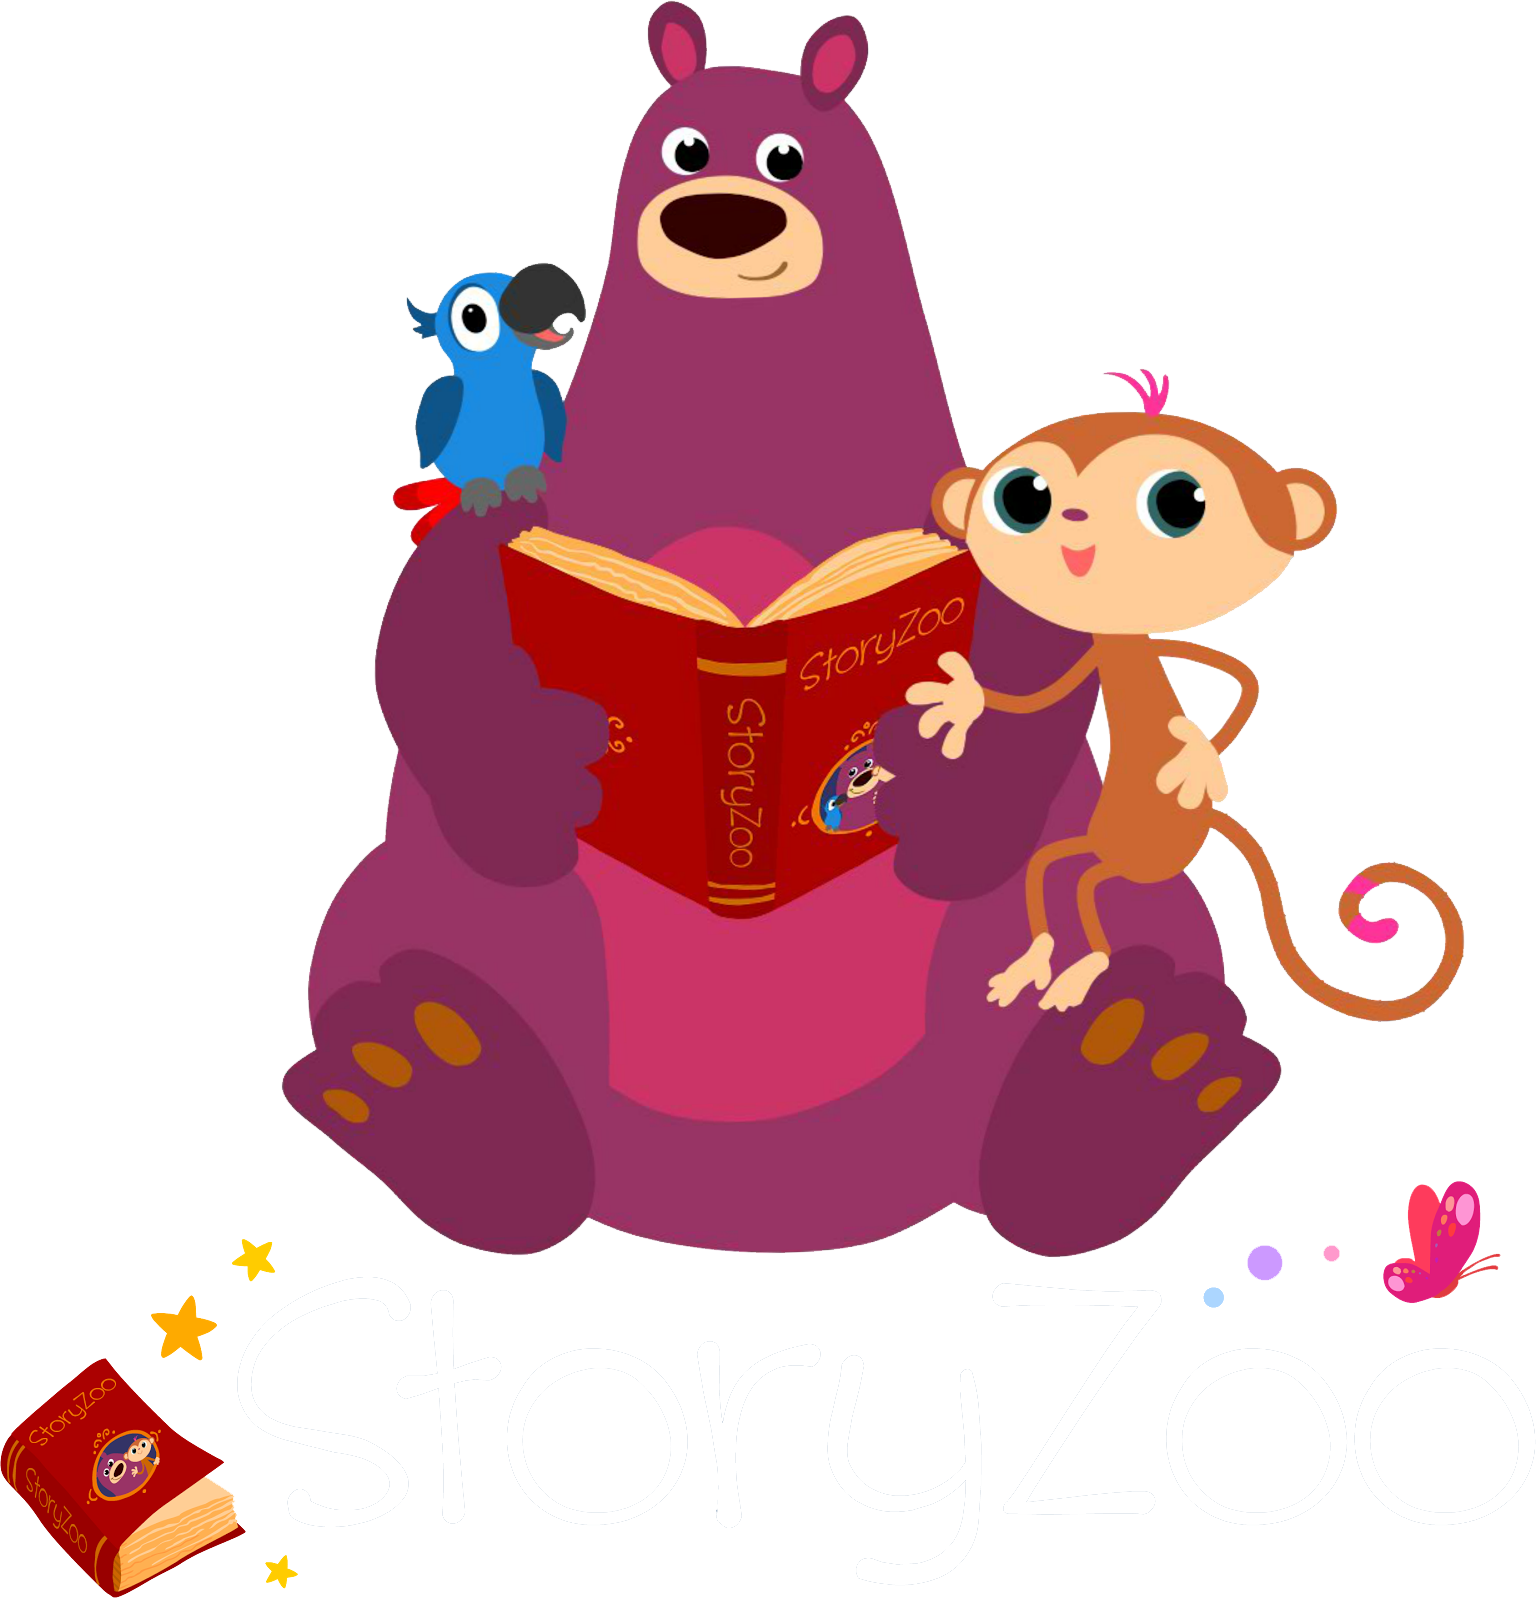 Clients_StoryZoo_03